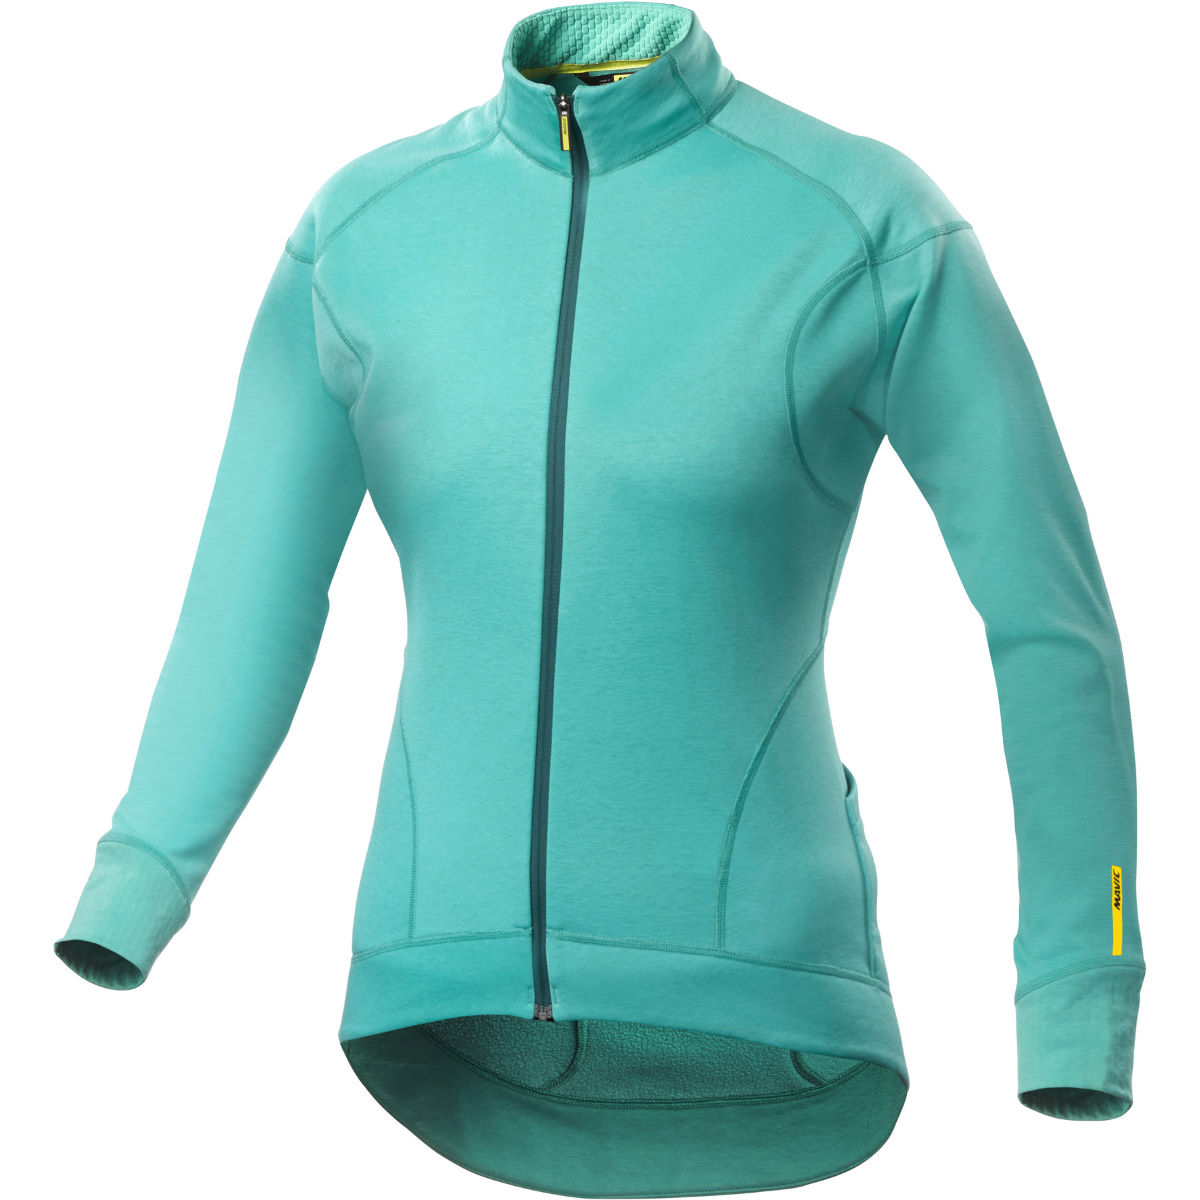 Maillot Femme Mavic Ksyrium Elite Thermo (manches longues) - XS